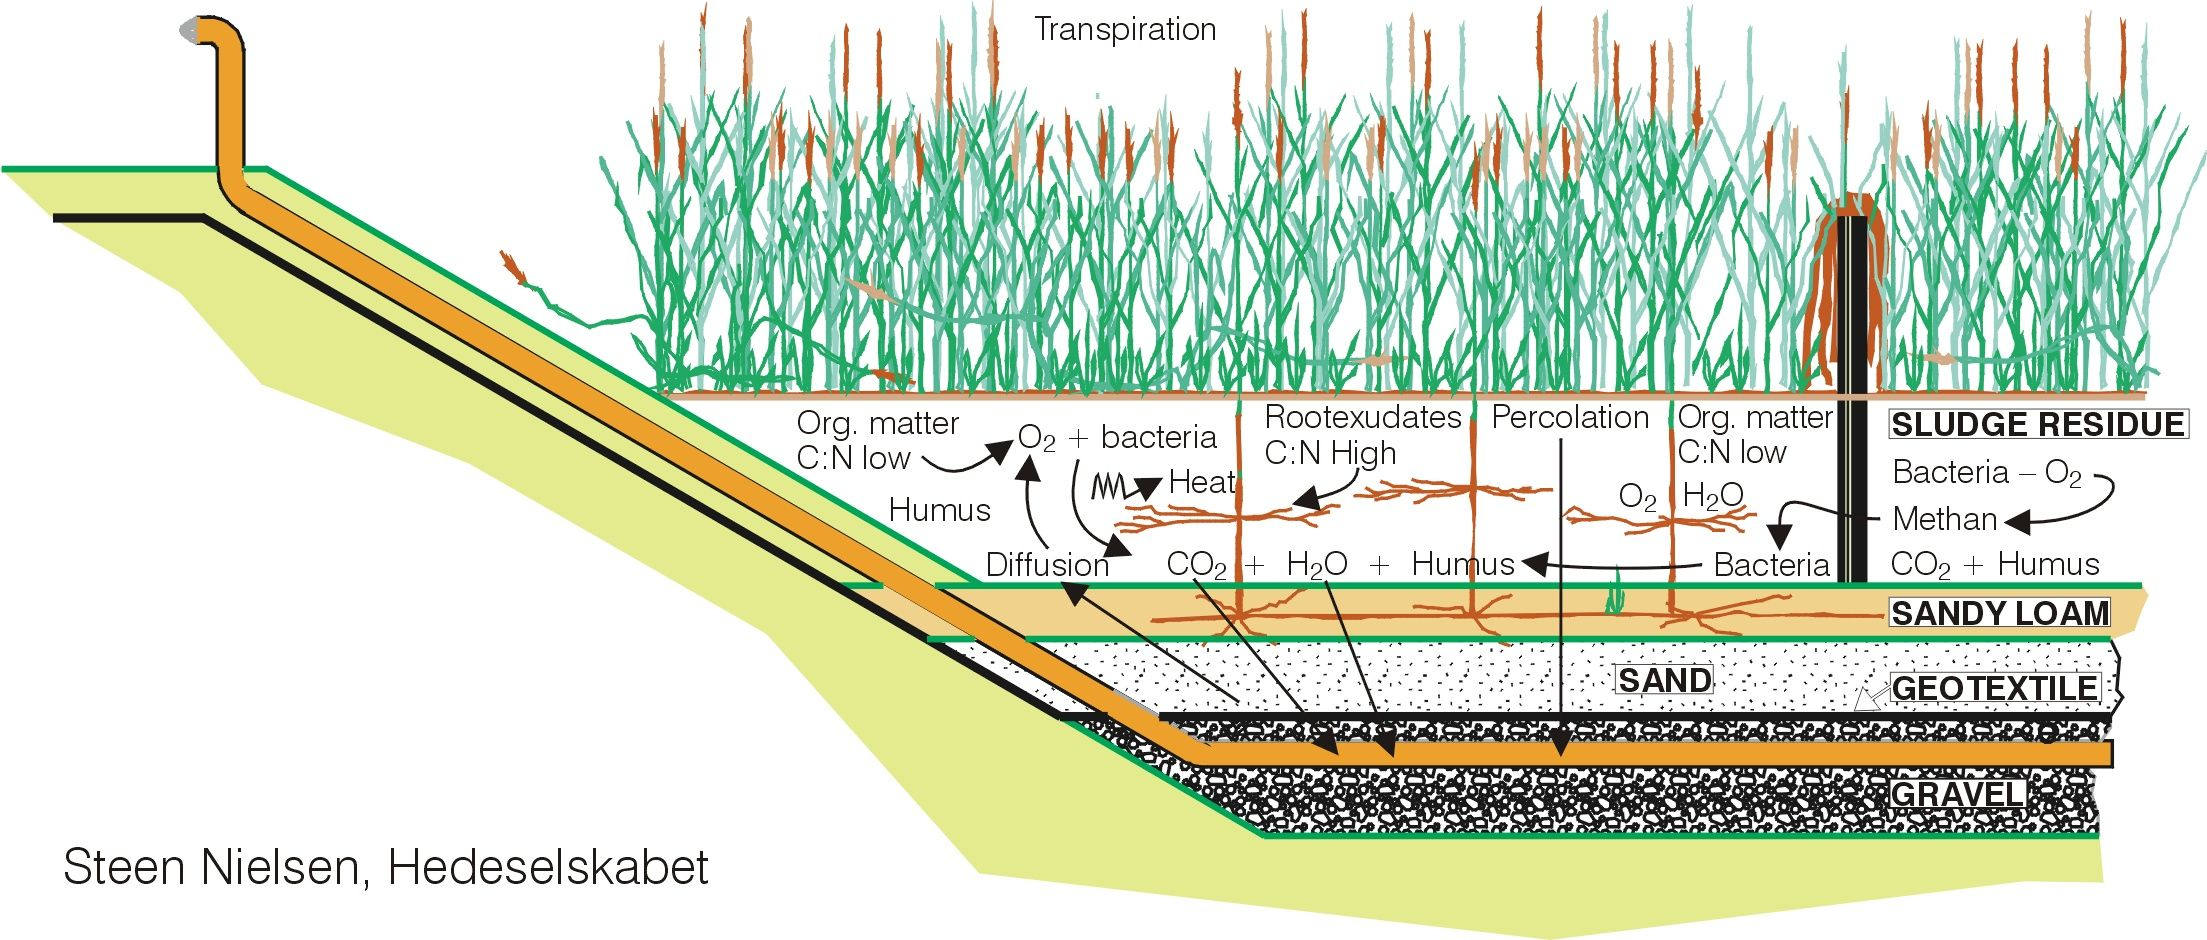 constructed wetlands diagram - Google Search | wastewater ...